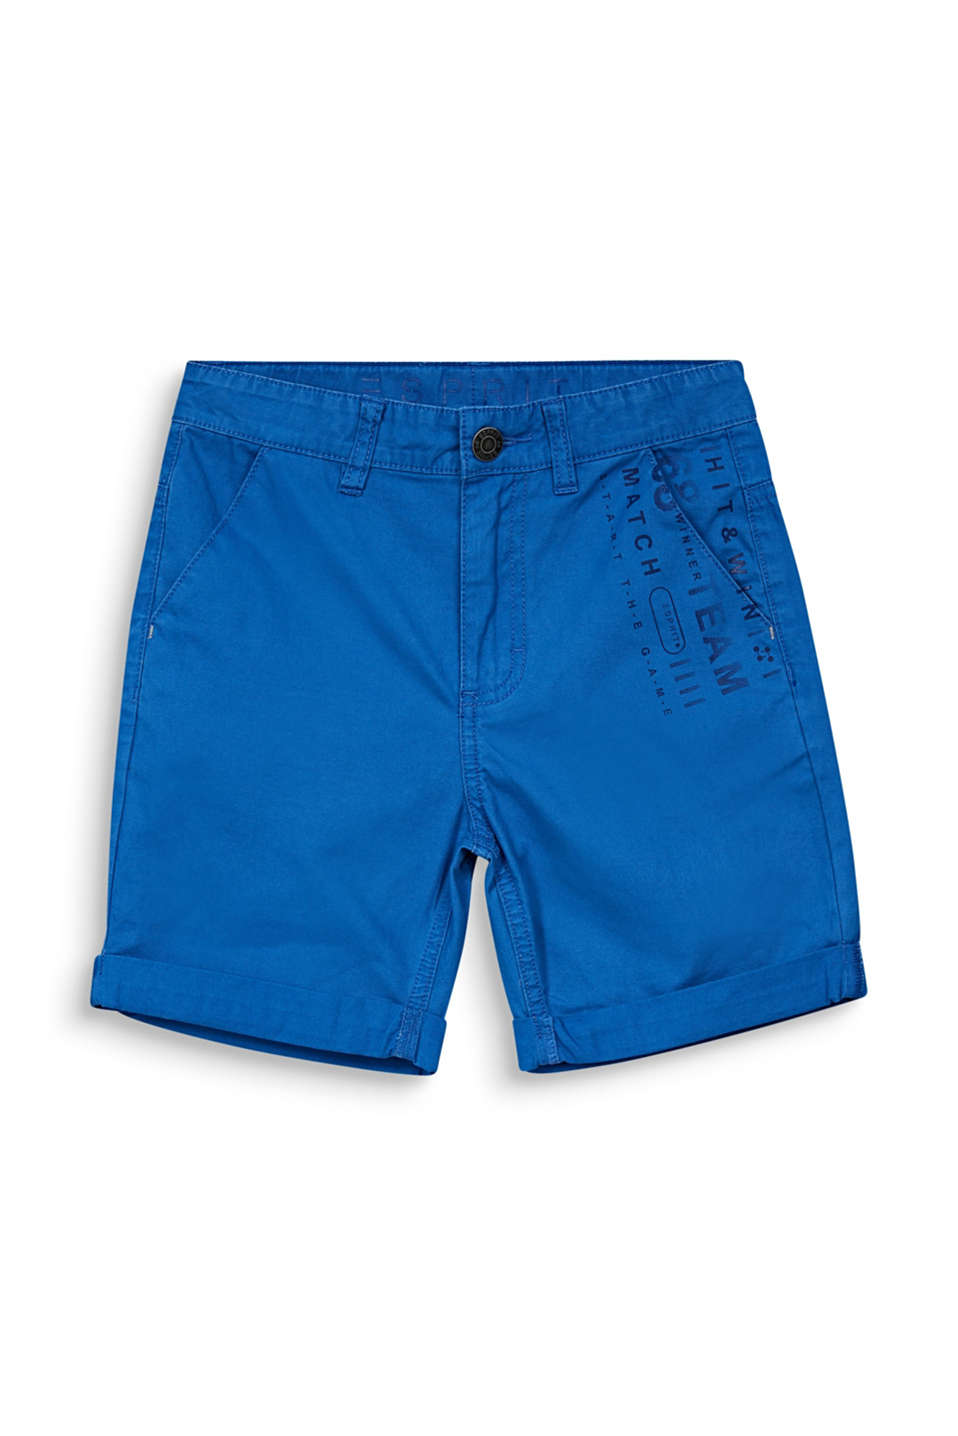 Woven shorts with a print, 100% cotton, LCELECTRIC BLUE, detail image number 3